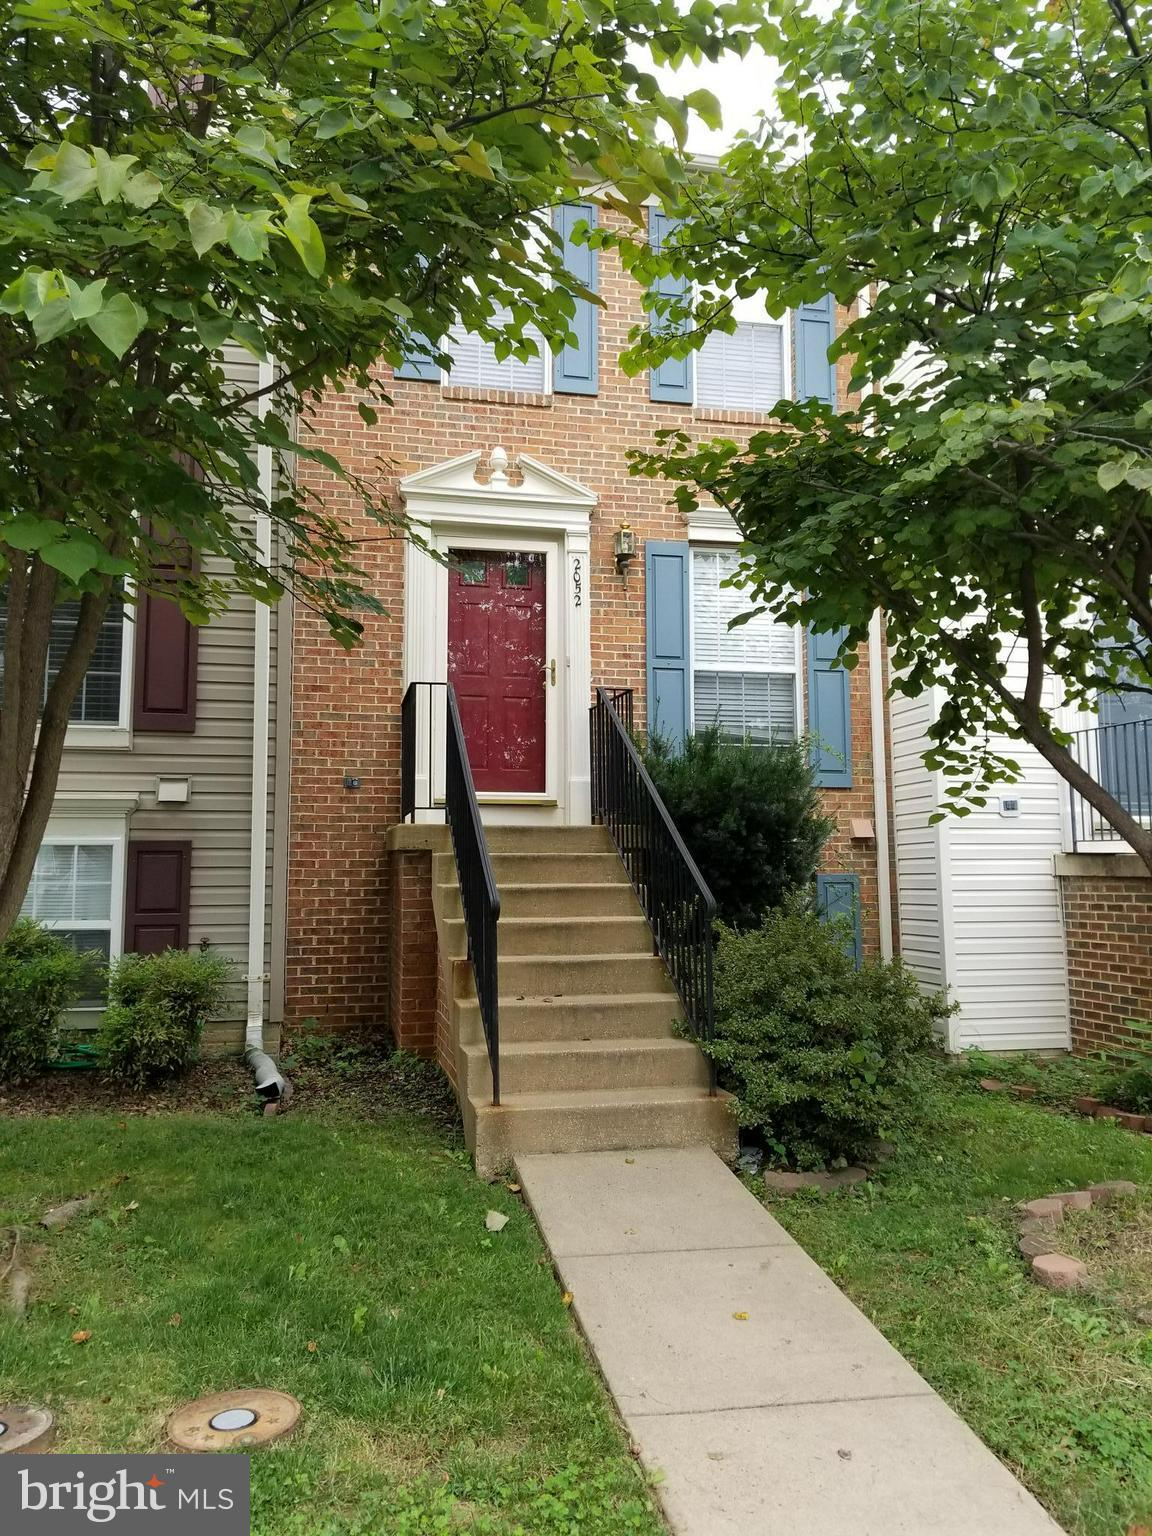 Beautiful 2  bedroom town-home with stainless steel appliances, Hardwood floors on main level, great deck, large bedrooms. Fully finished walkout basement with full bath. Community Pool and Tennis Courts. Close to everything. Motivated Sellers, bring your best offer.